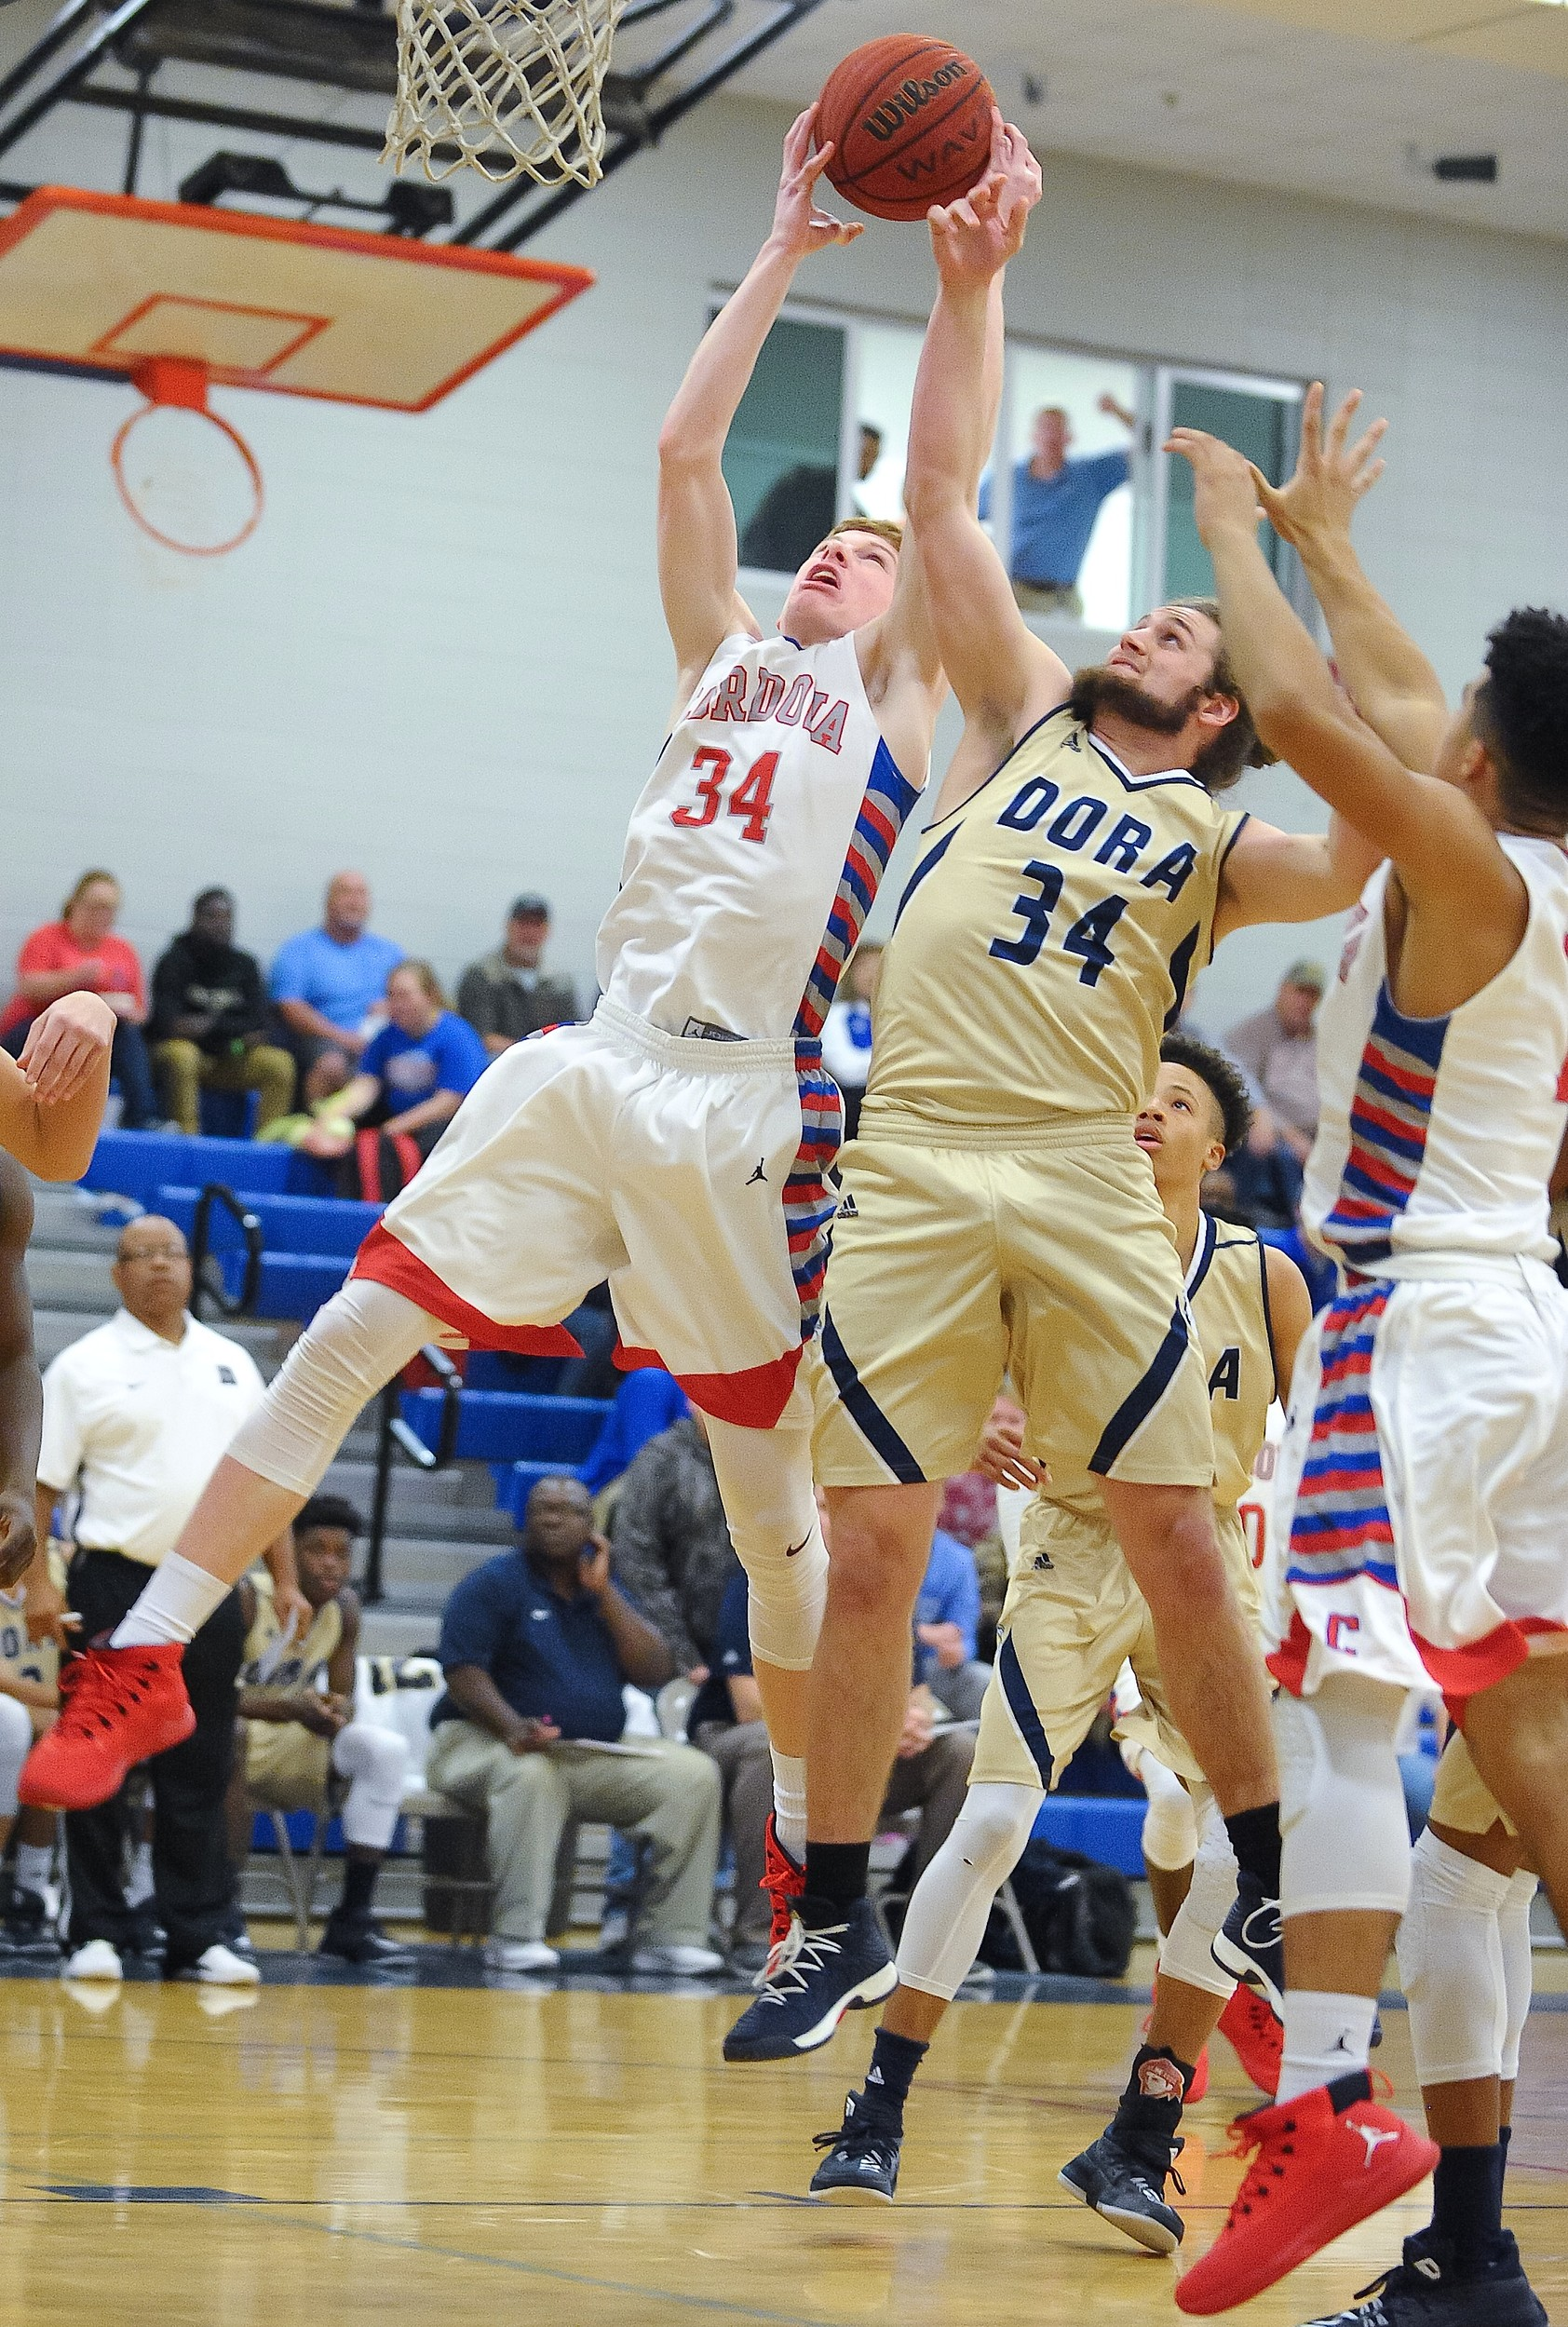 Cordova's Jayce Willingham, left, pulls down a rebound in front of Dora's Noah Roberts, right, during their area game Tuesday at Cordova High School. The Blue Devils won the game 75-60.